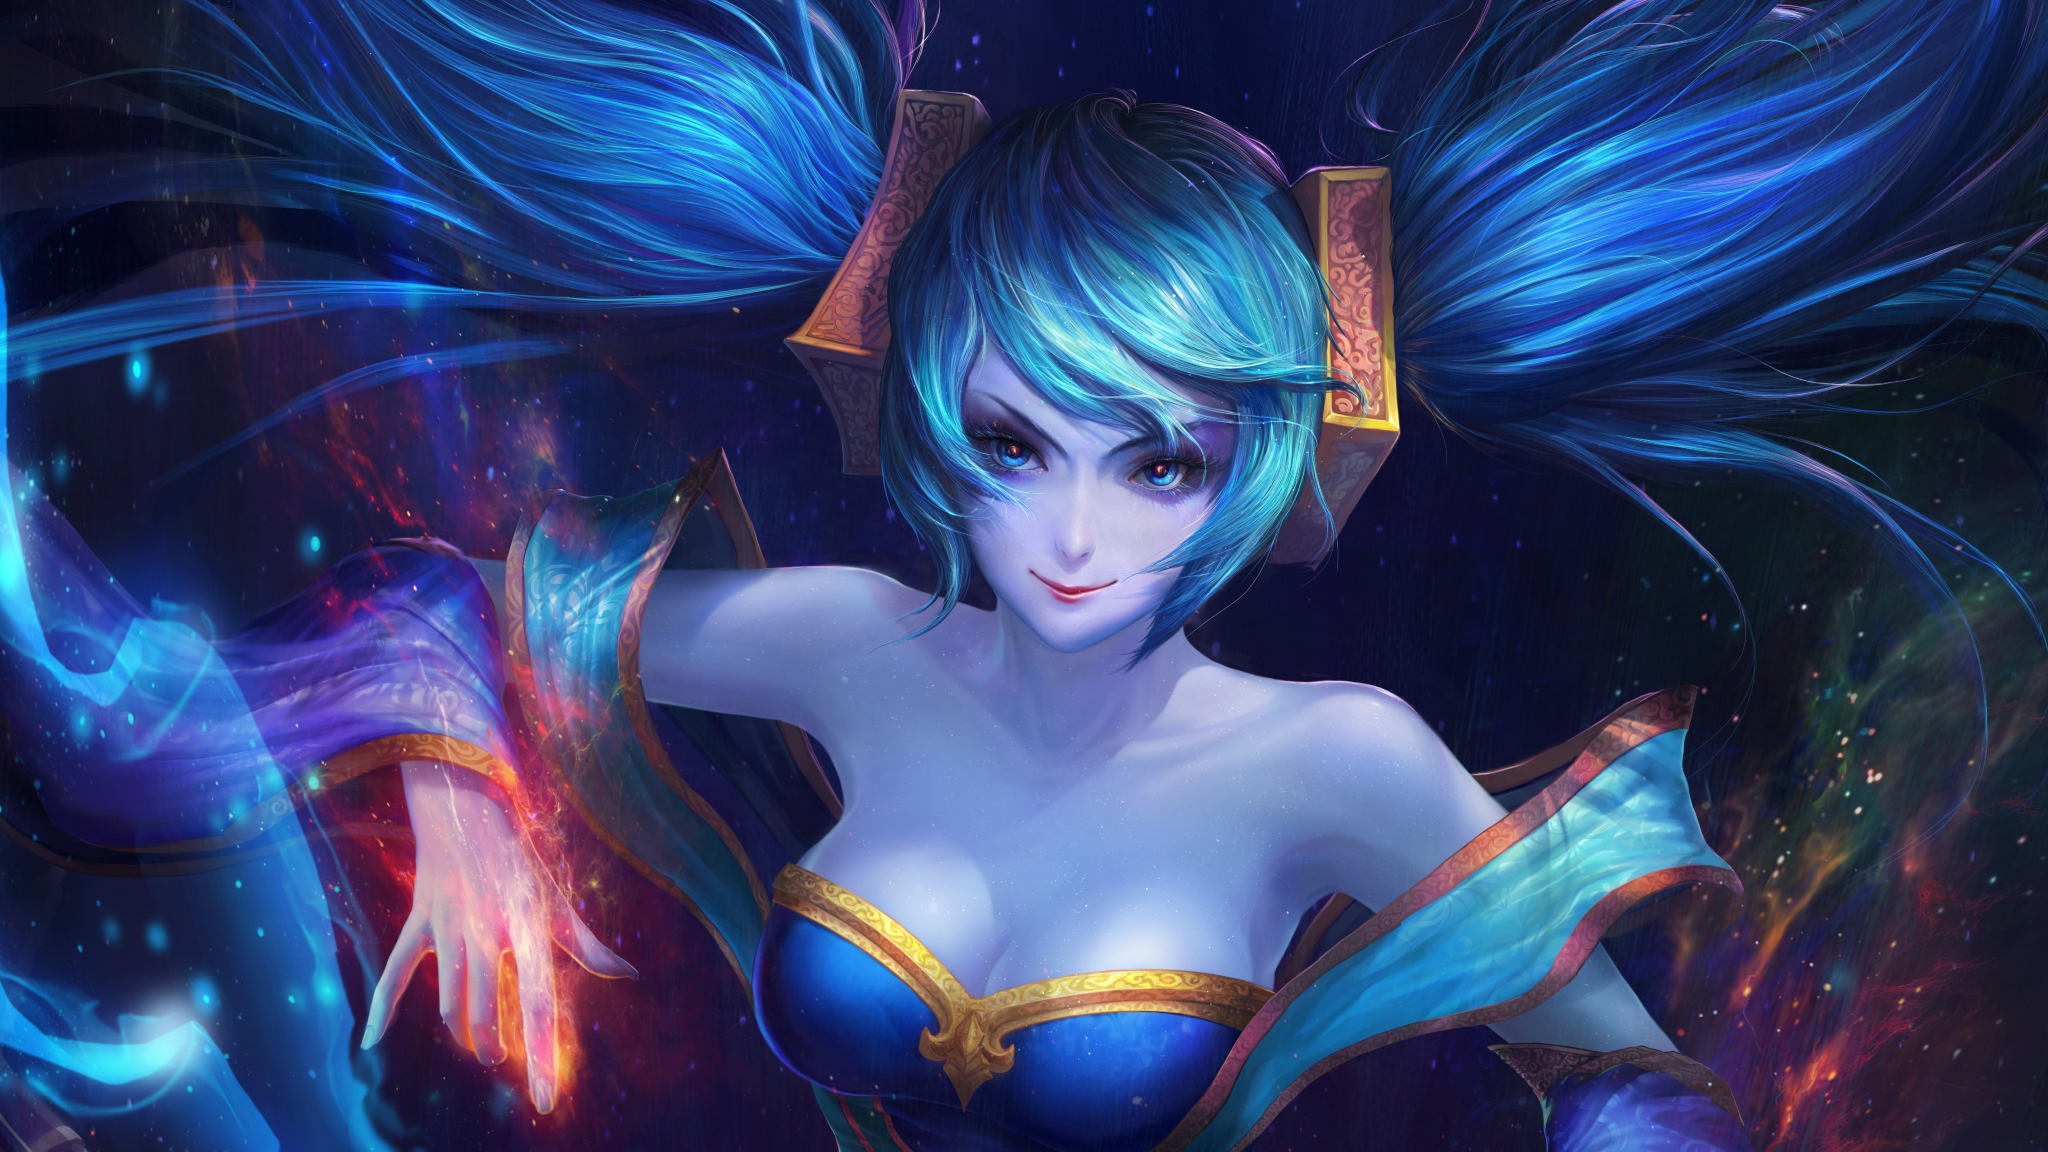 sona league of legends hd 4k wallpaper